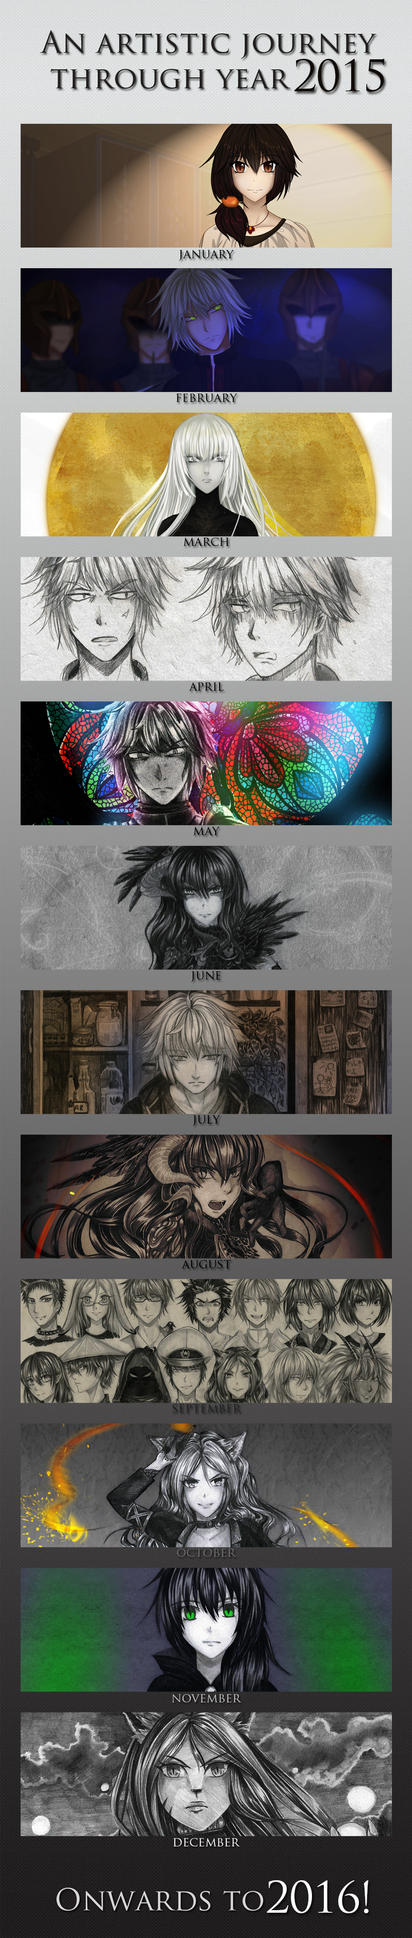 2015 Art Summary by Noire-Ighaan